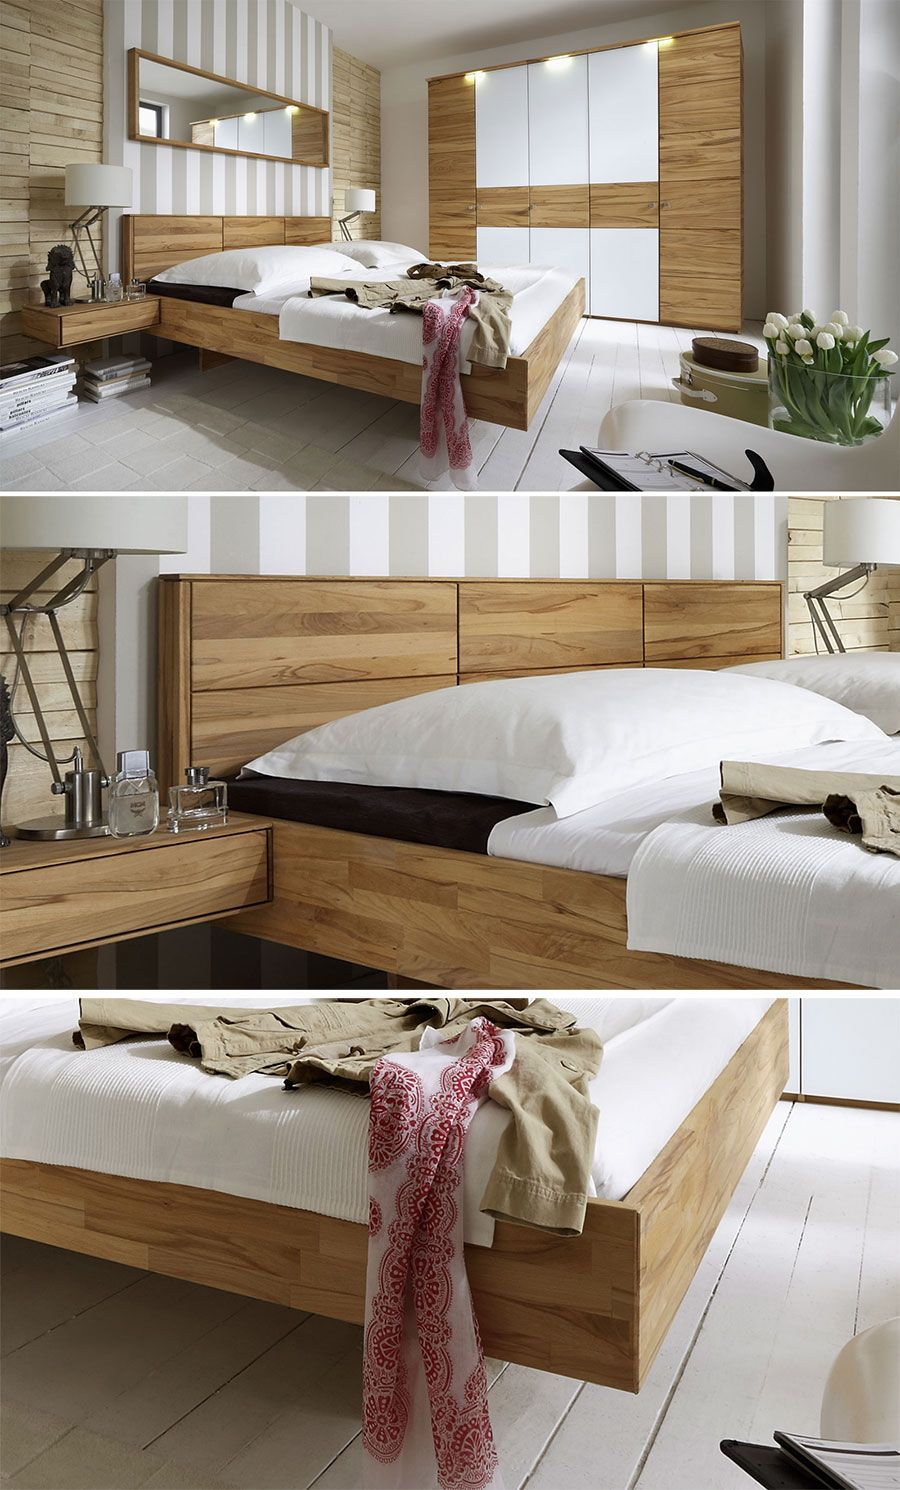 komplettes schlafzimmer in einem look gestalten. Black Bedroom Furniture Sets. Home Design Ideas